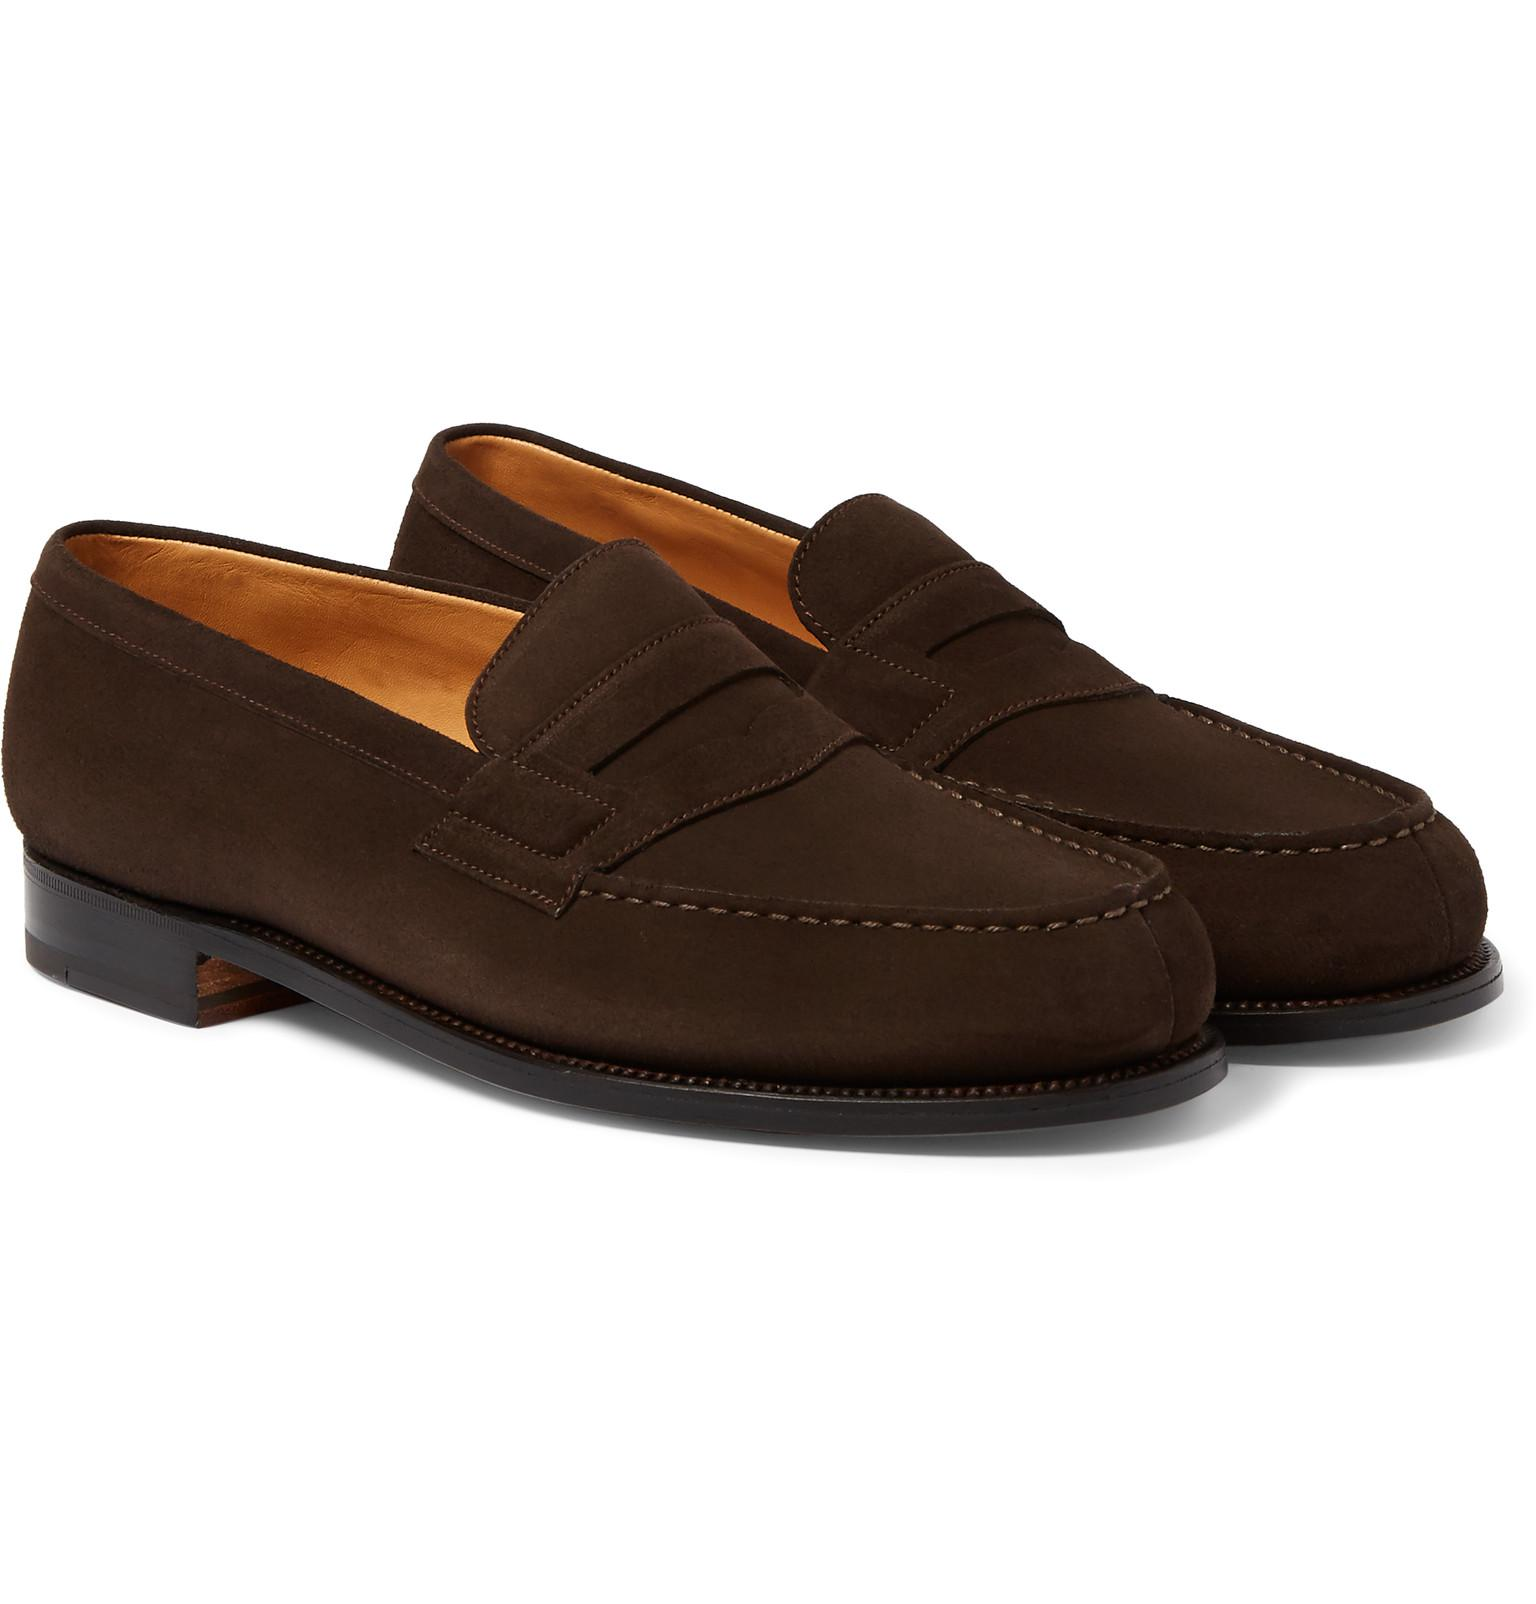 Leather And Suede Penny Loafers J.M. Weston Free Shipping Comfortable Clearance Low Cost Clearance Fake Sneakernews Cheap Online Cheap Outlet Locations Ti8dAV